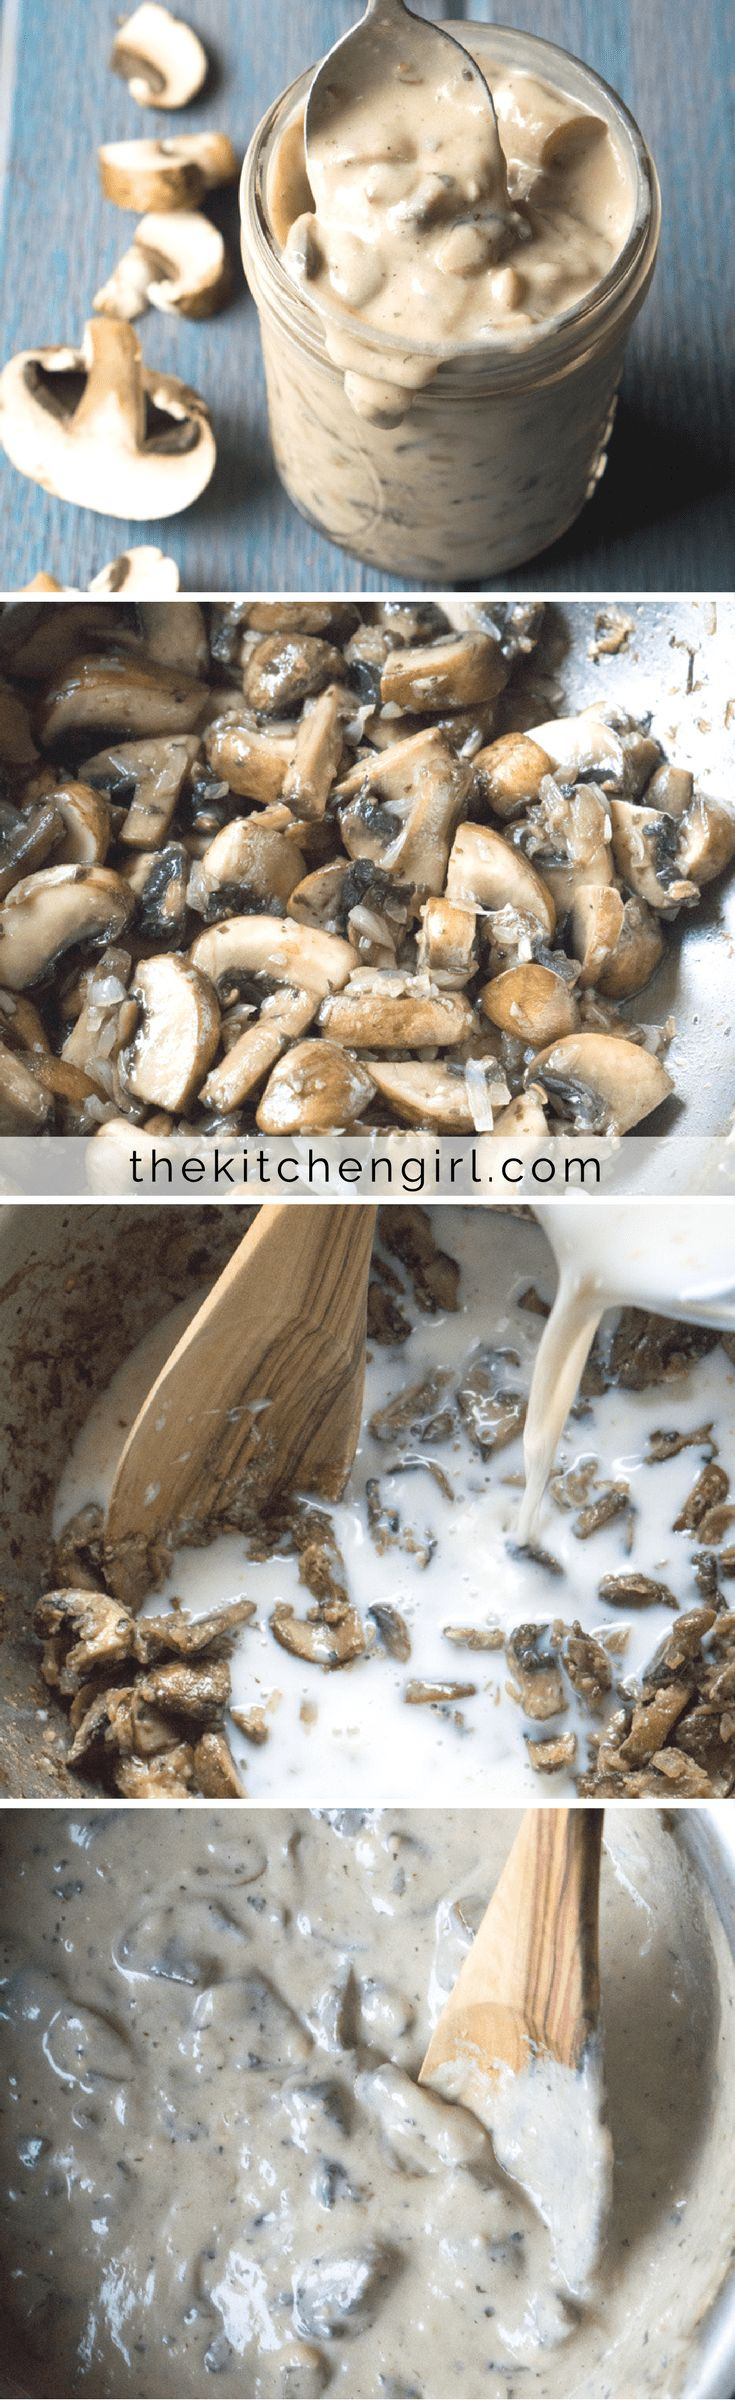 You really WON'T believe it's vegan Cream of Mushroom Soup! Easy, creamy, perfect for gravy, casserole, pasta, and creamy soups. Low-salt, low fat, & gluten free! thekitchengirl.com